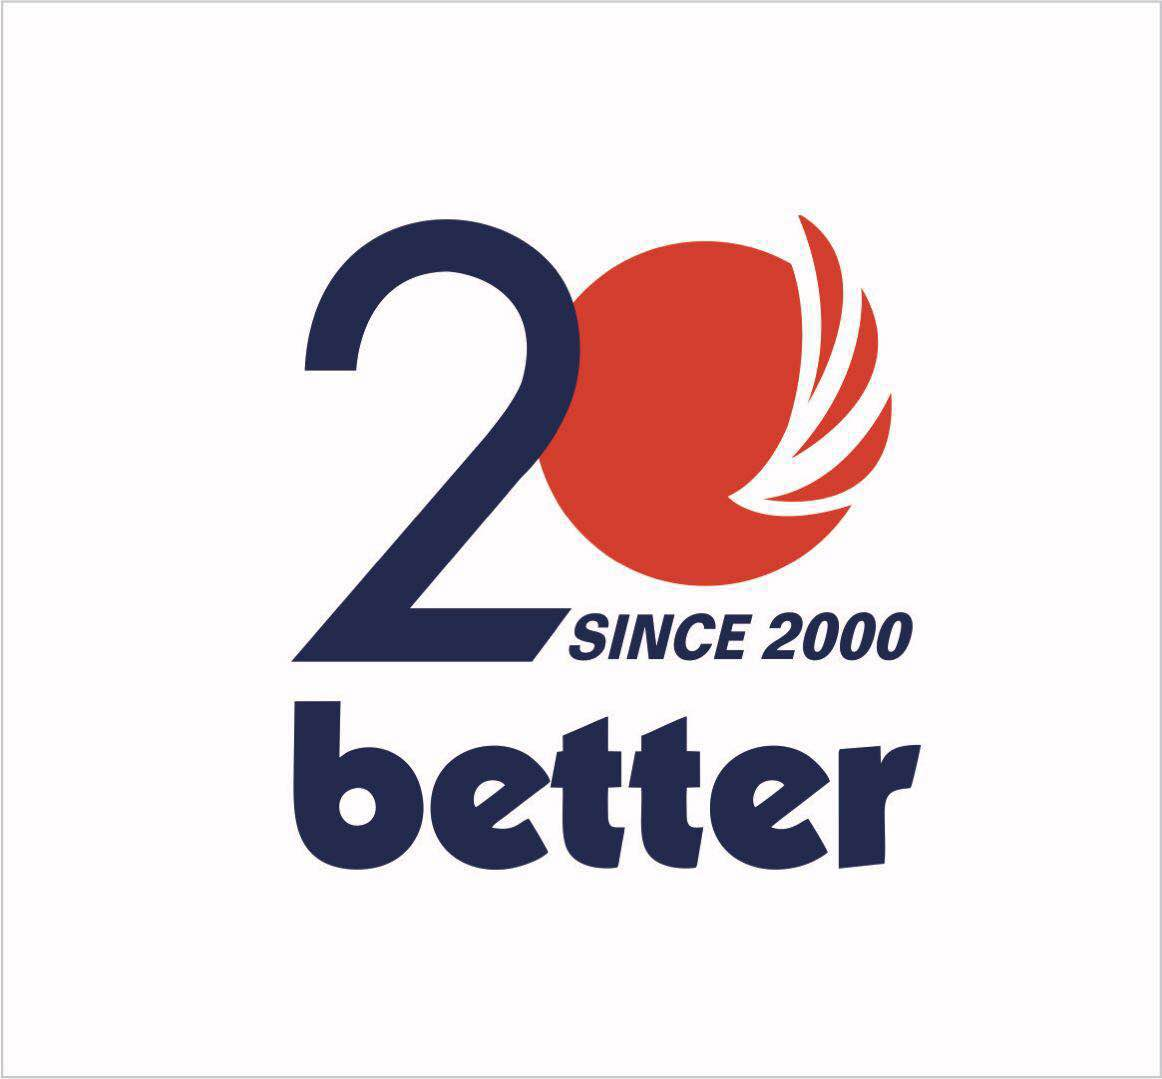 Warm congratulations to the 20th anniversary of the establishment of Better New Materials!